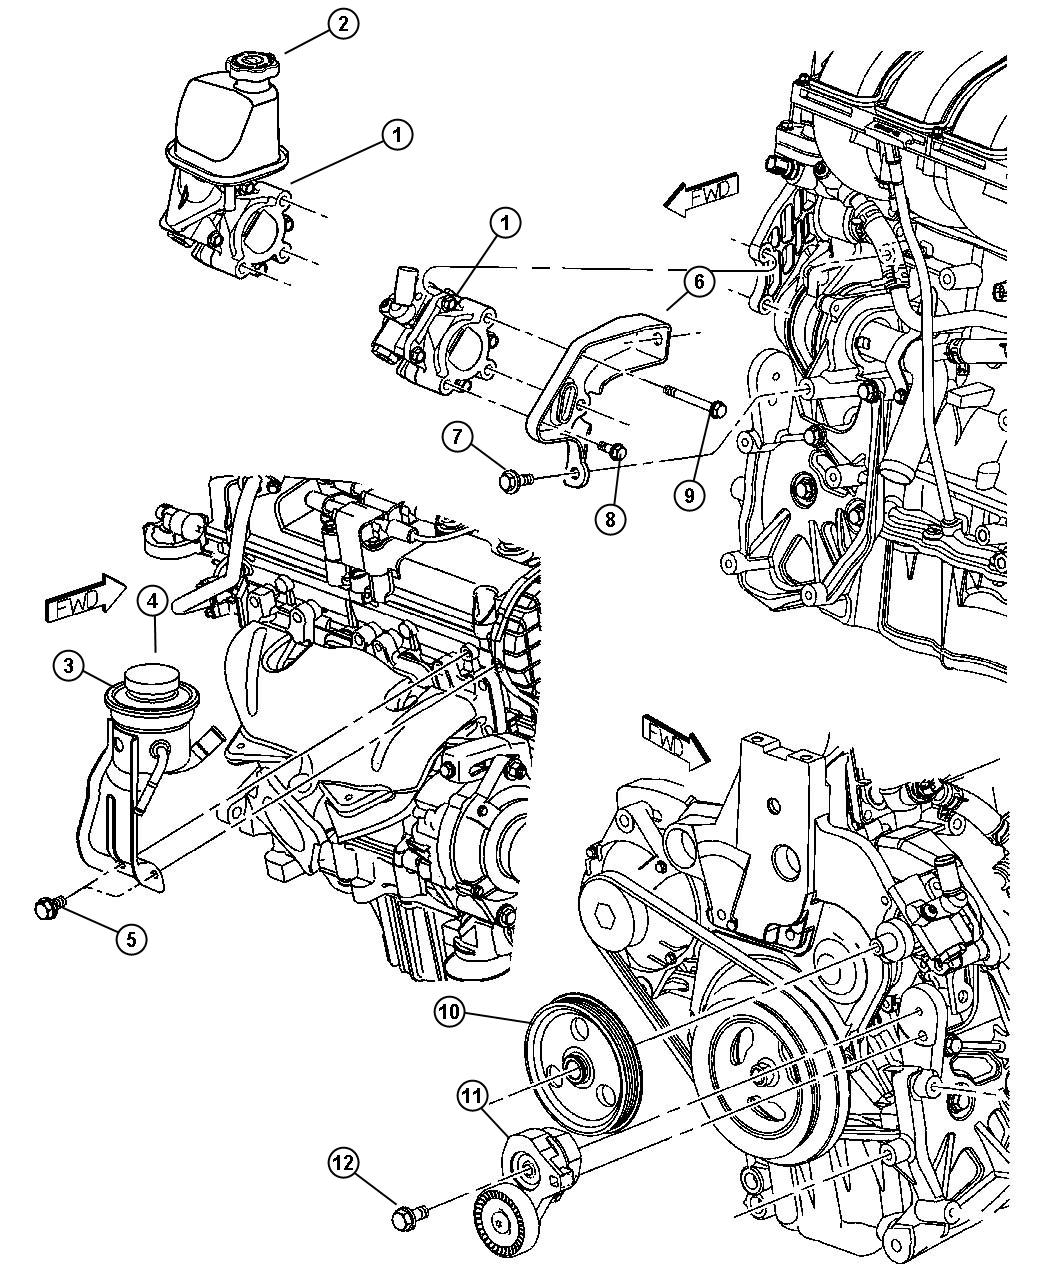 Pump Assembly and Mounting 2.4L [EDV, EDZ] Engine